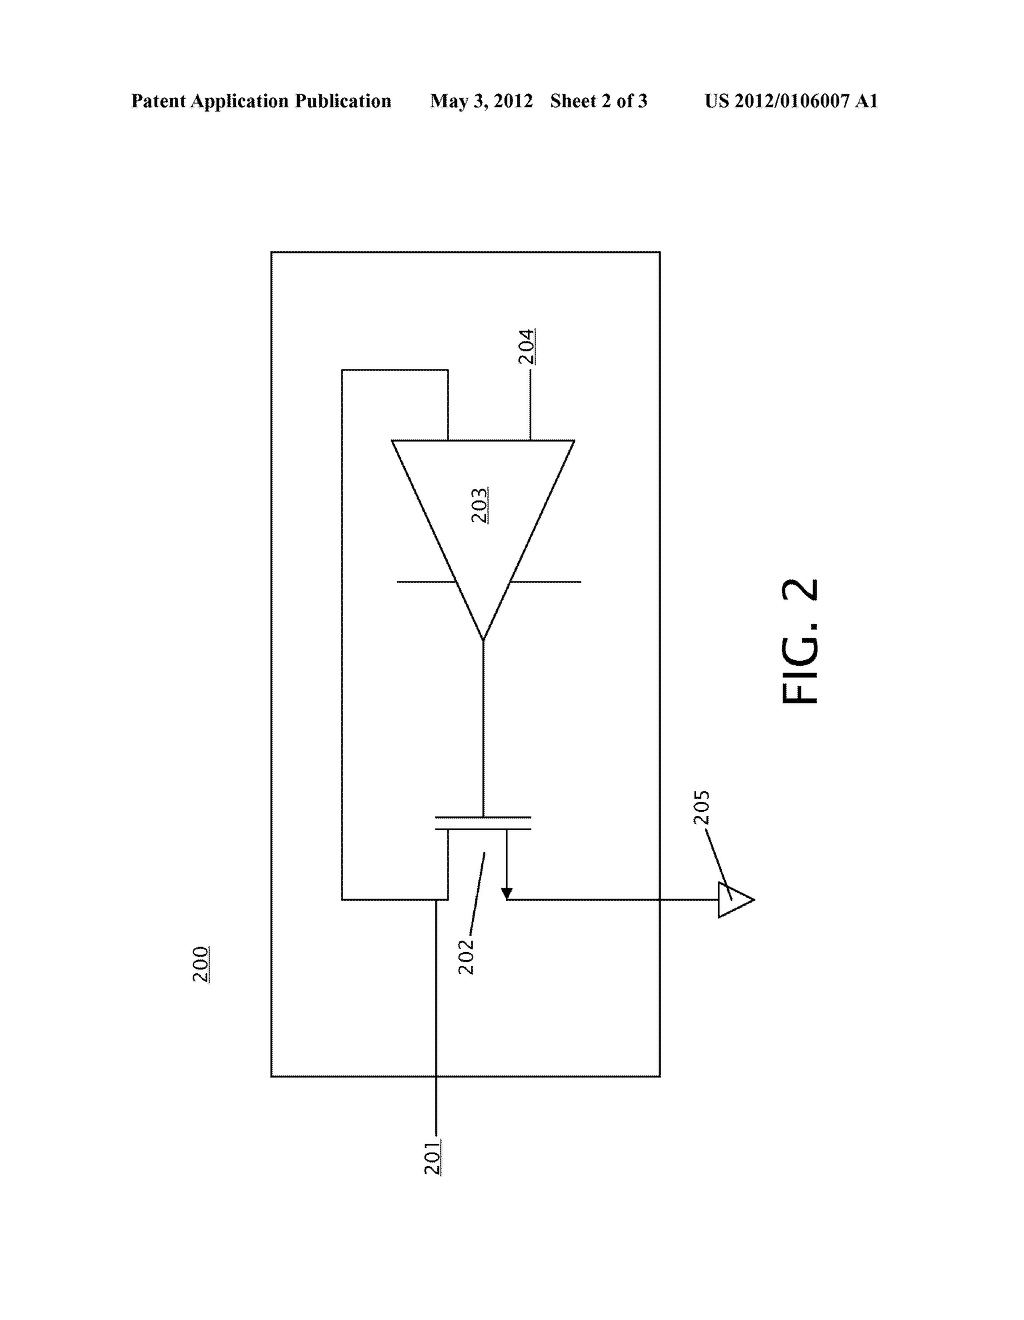 Shunt Regulator for Overvoltage Protection at Transformer Rectifier